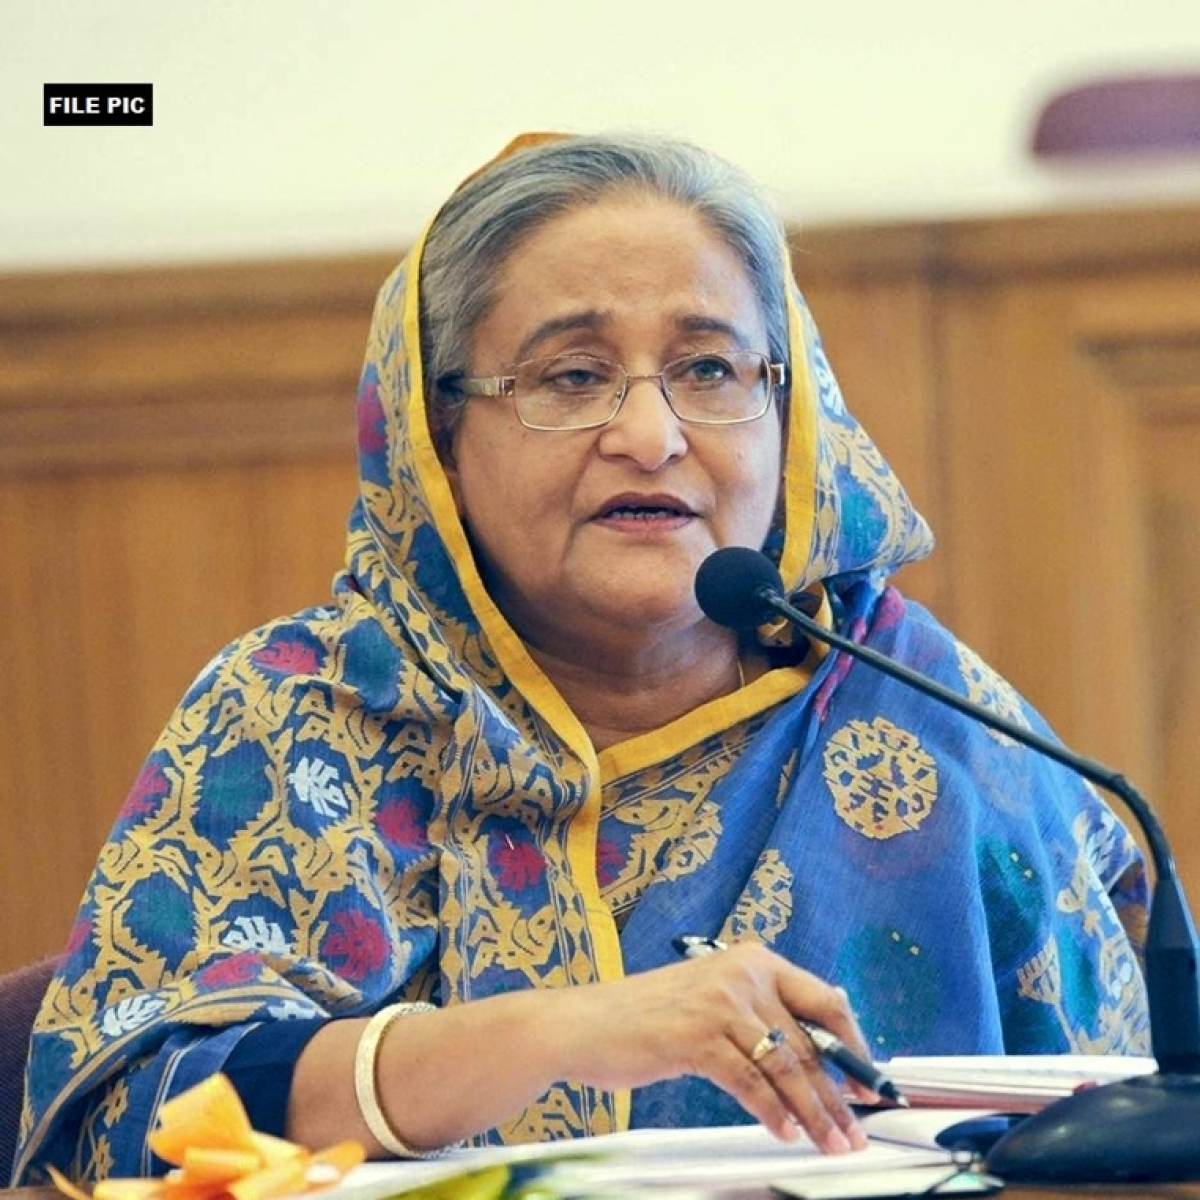 Bangladesh: Opposition leader gives death threats to PM Hasina, receives three-year jail term